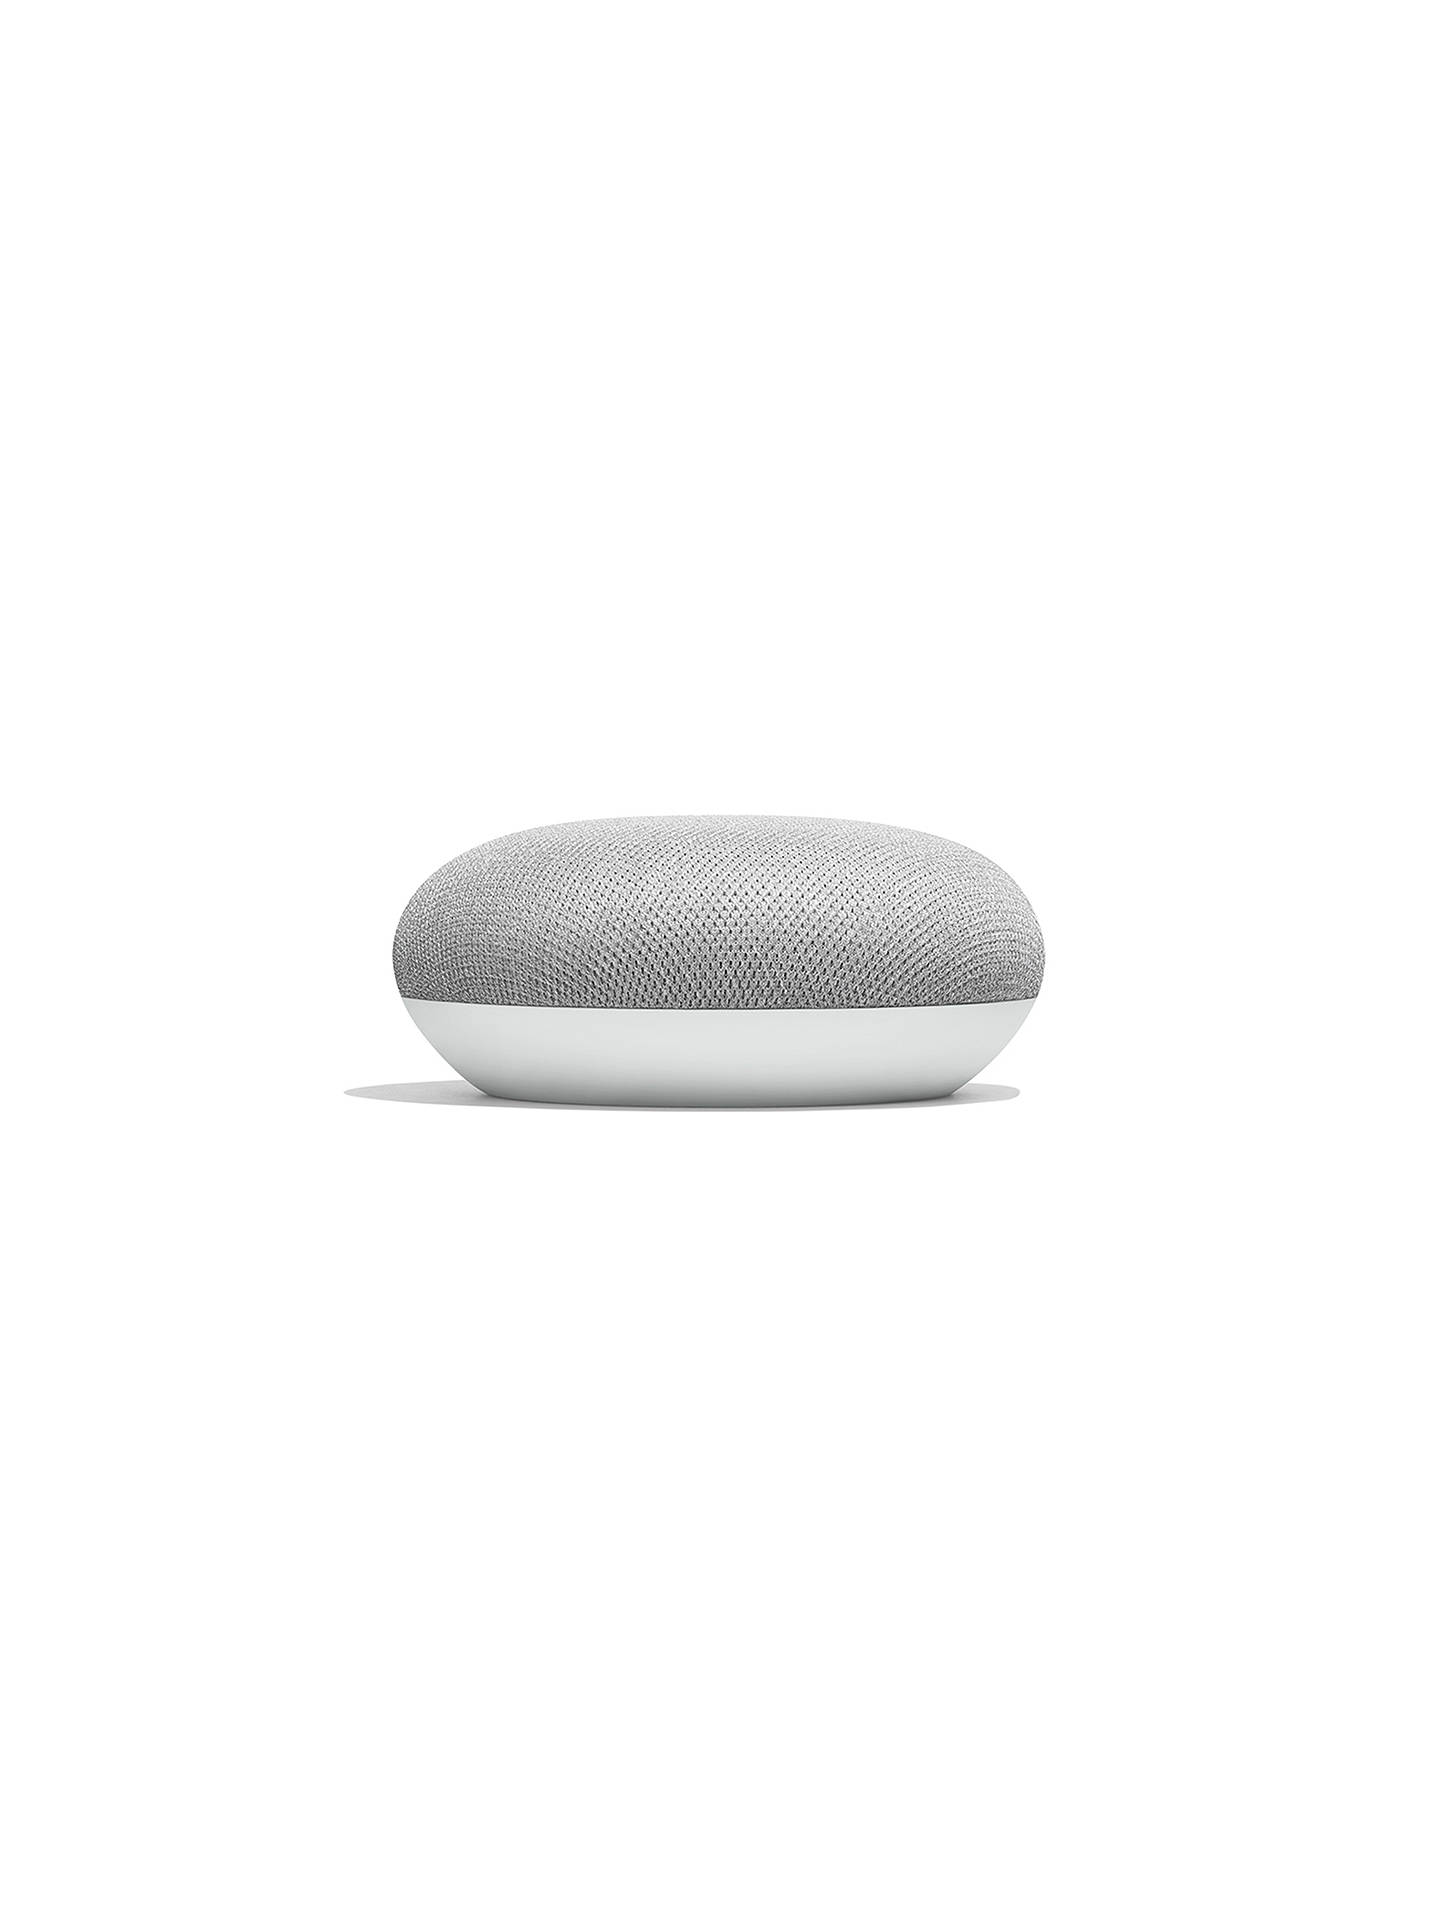 BuyGoogle Home Mini Hands-Free Smart Speaker, Chalk Online at johnlewis.com